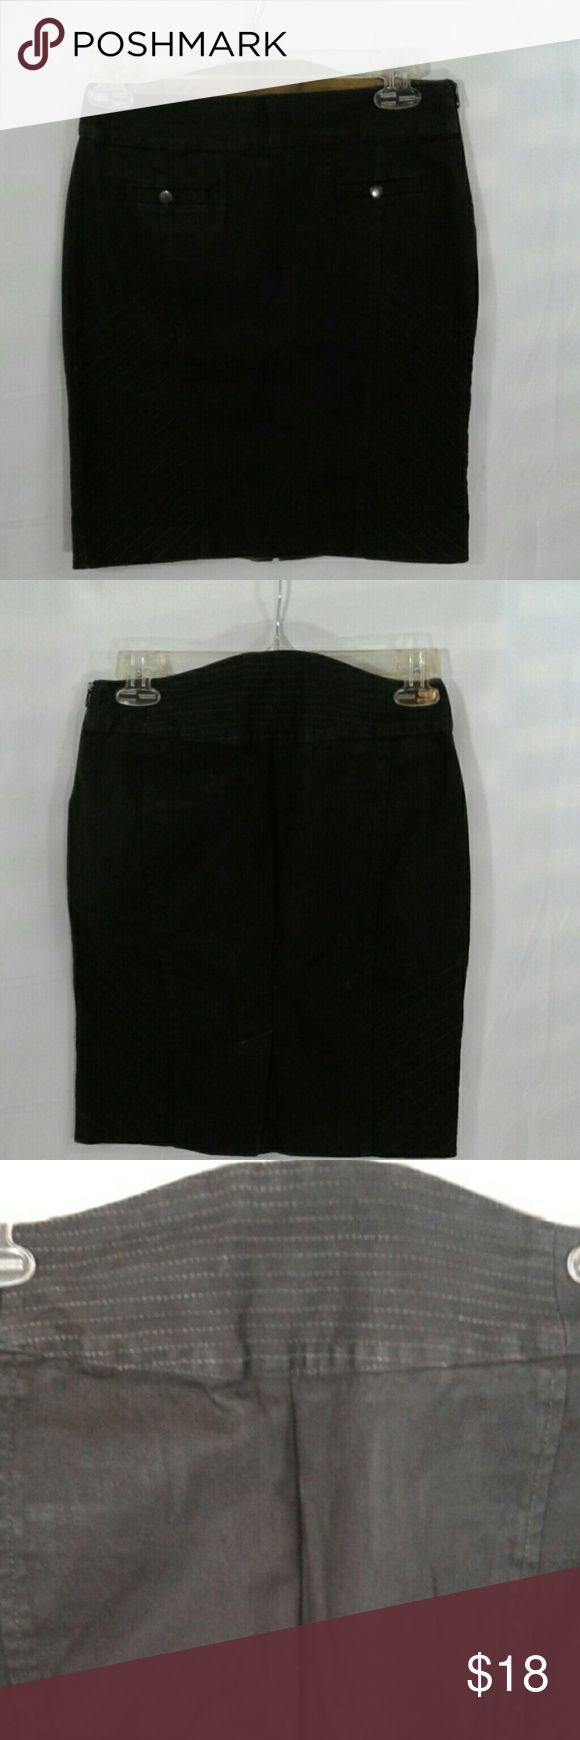 AX Armani Exchange Size P0 black denim skirt Black denim straight above knee size petite size 0 skirt, fabric 98% cotton 2% spandex machine washable. Two front snap top Pockets left side zipper back Center kick slit 4.5 in.  26 in waste, 30 inch hips, 17 in length. Armani Exchange Skirts Midi